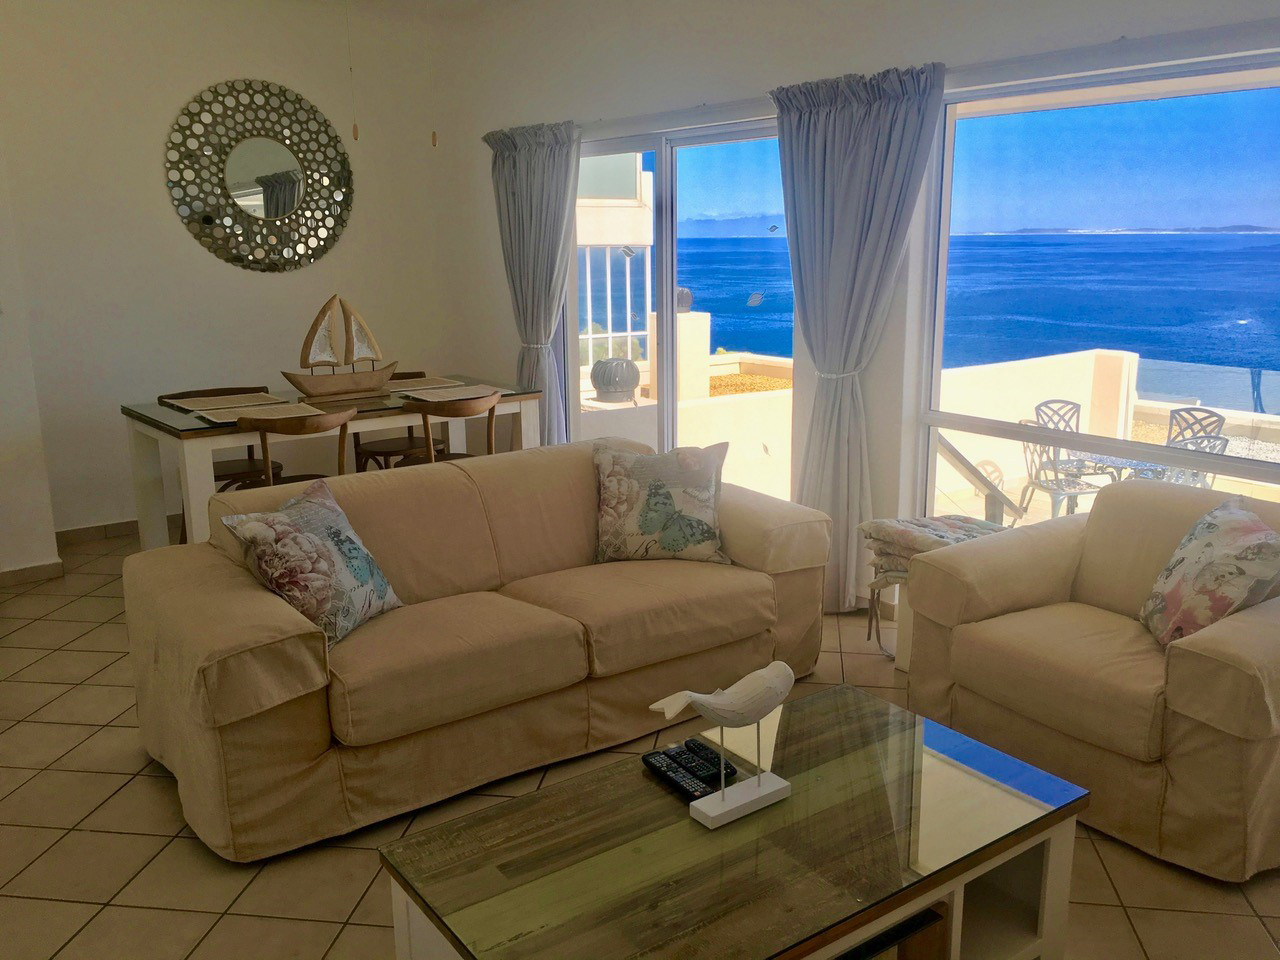 1 Bedroom Penthouse Luxury Apartment Ocean View Apartments